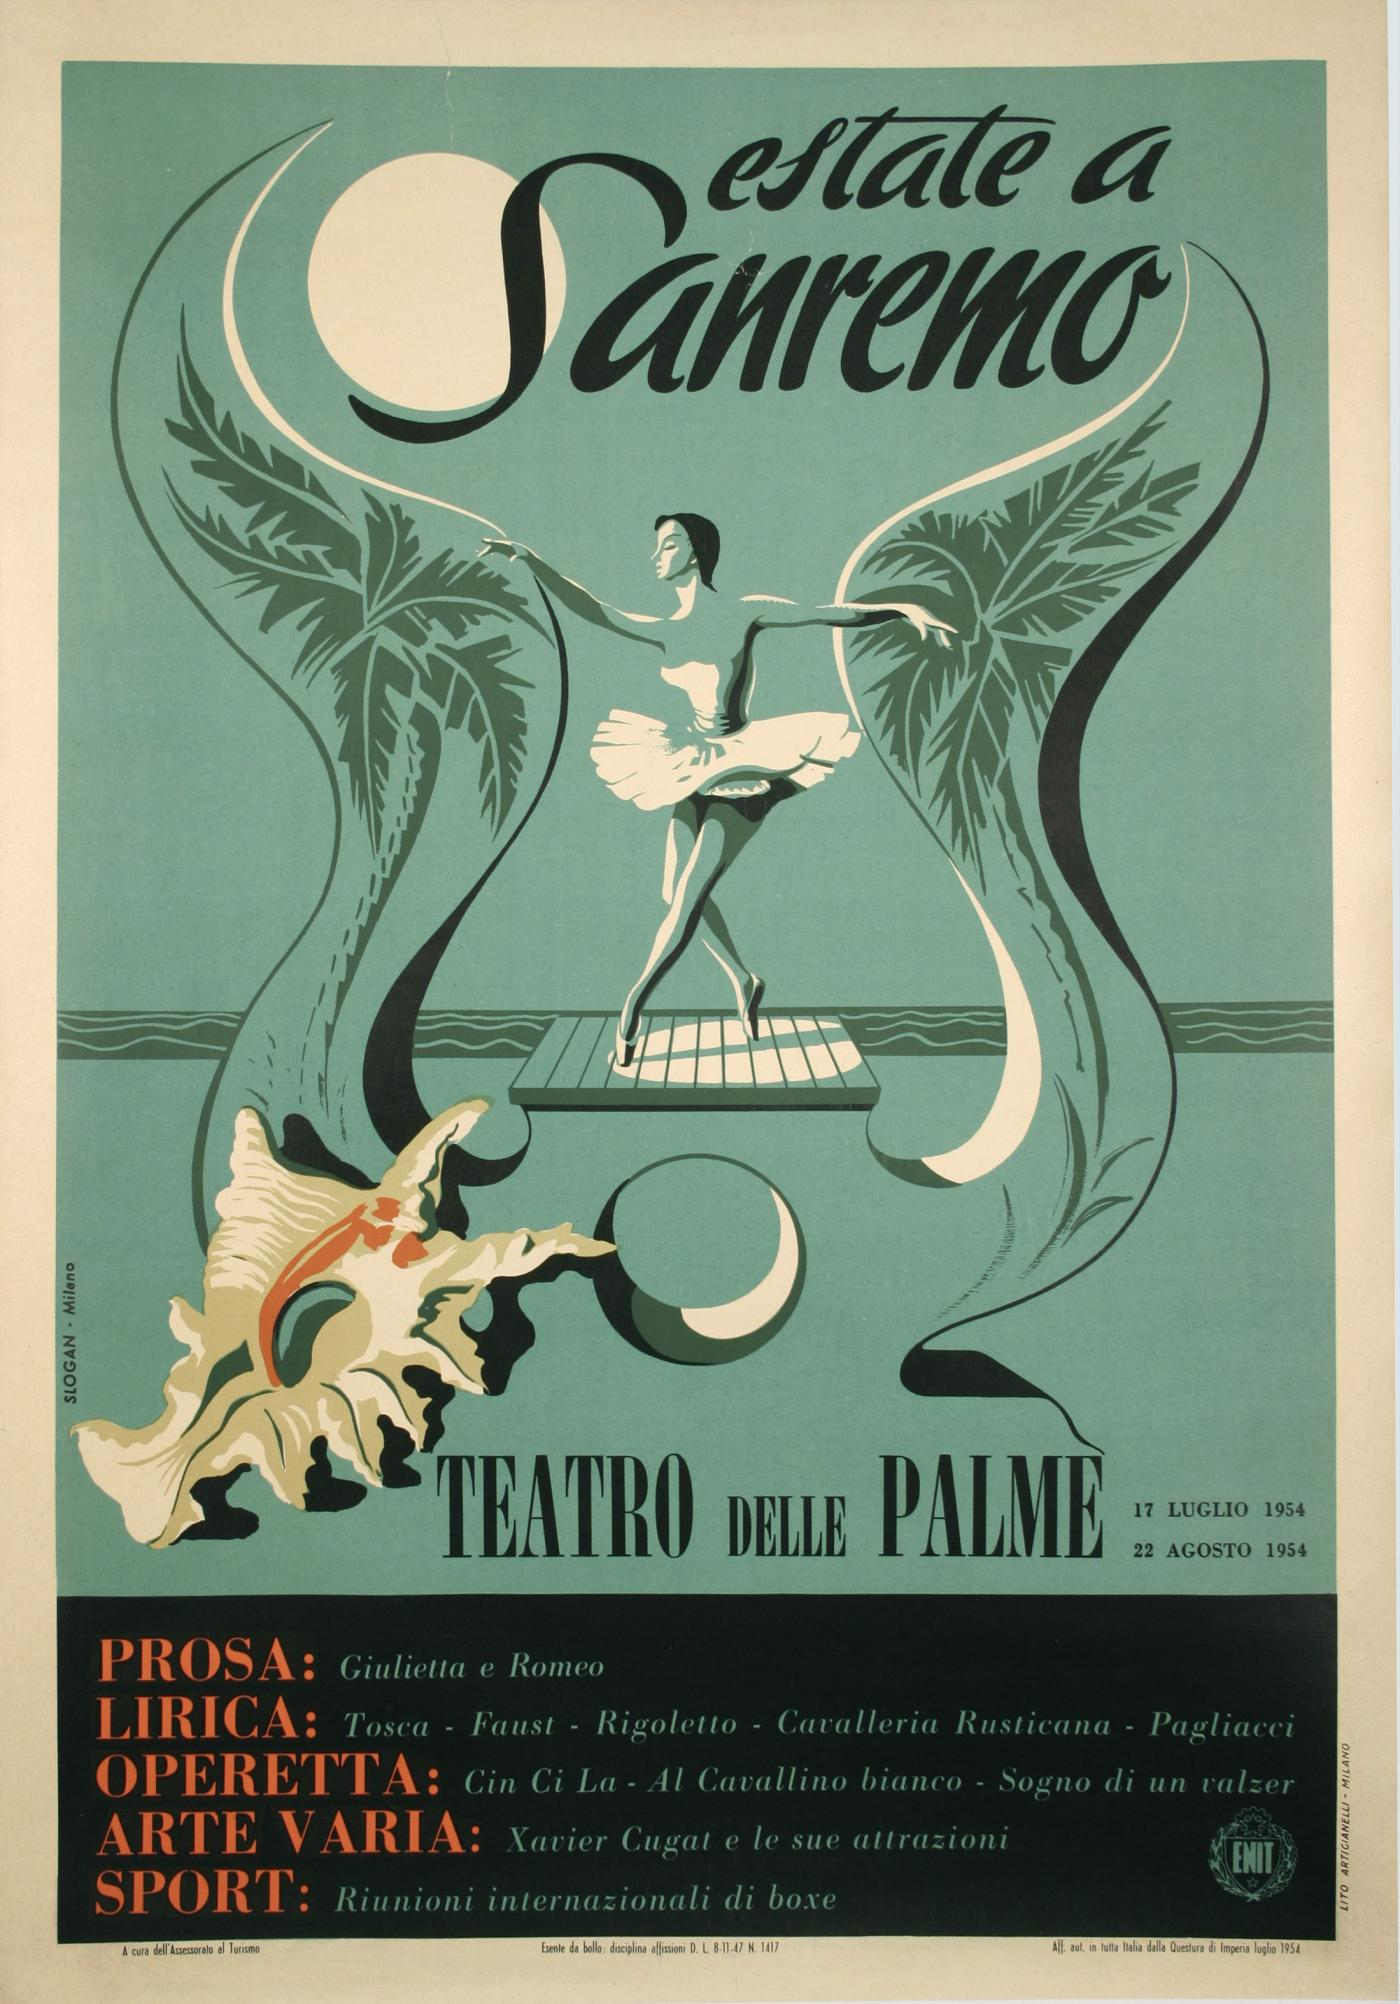 Poster design 20th century - Vintage Italian Mid 20th Century Festival Poster Click On Image To Enlarge